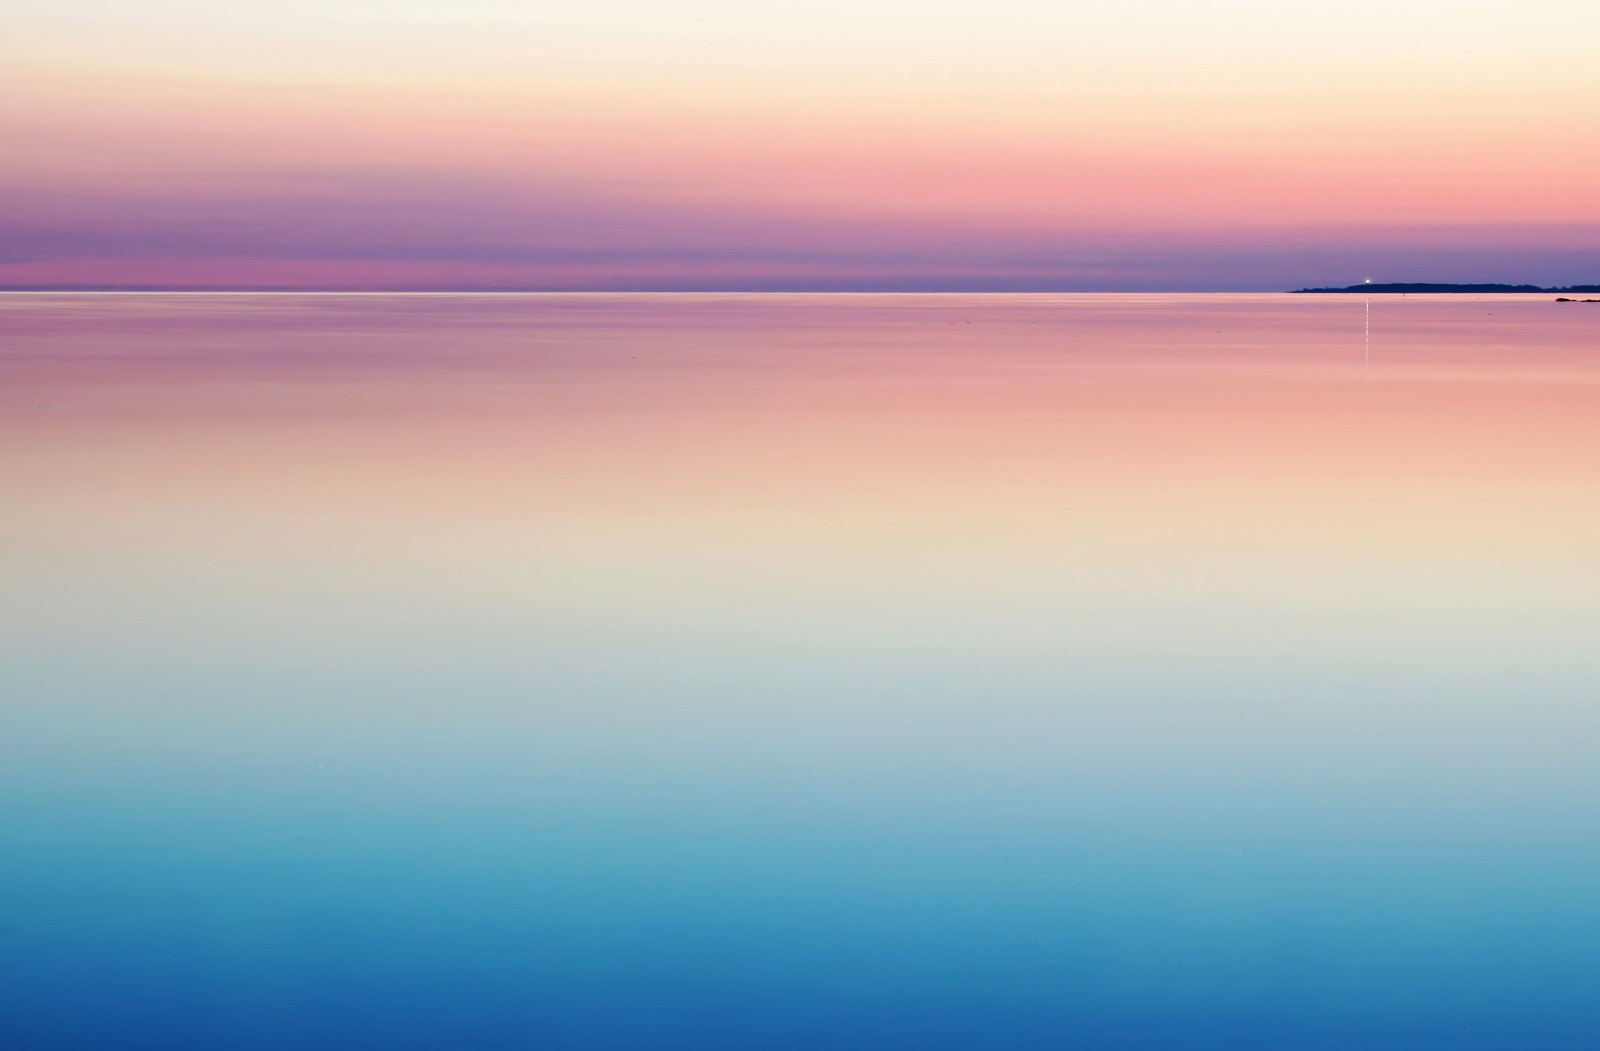 Blue And Pink Sea by Harli-Marten